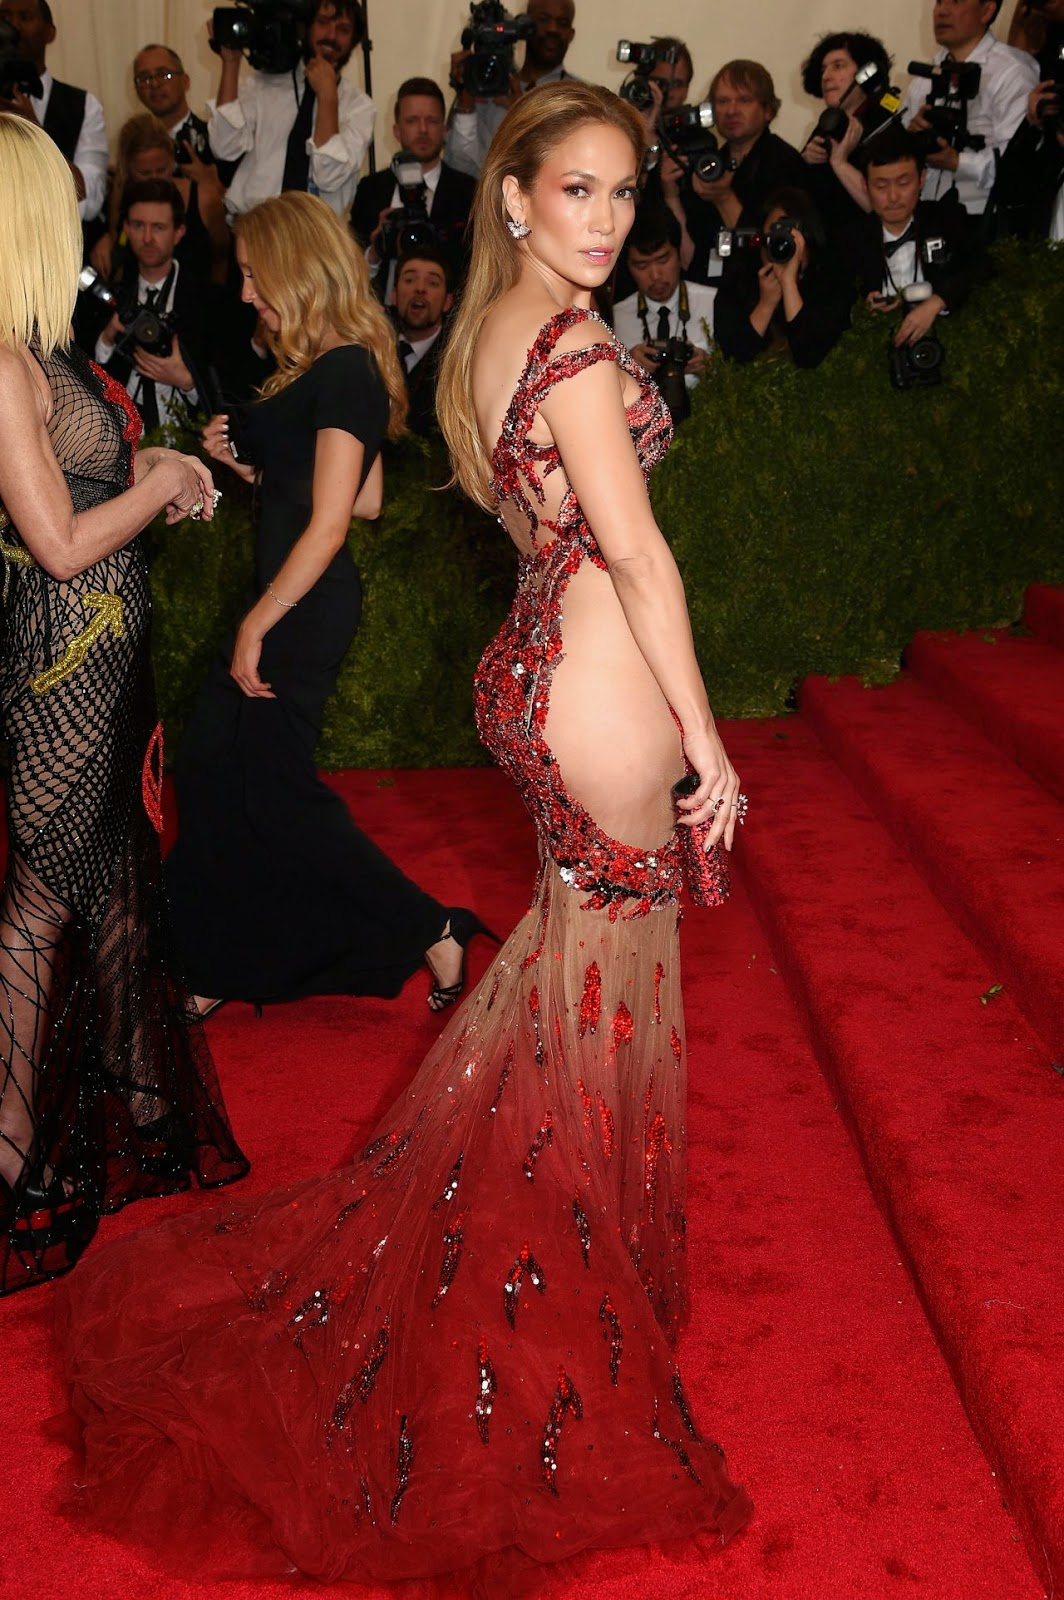 Jenner Lopez flaunts ample skin in a revealing Versace dress at the 2015 Met Gala